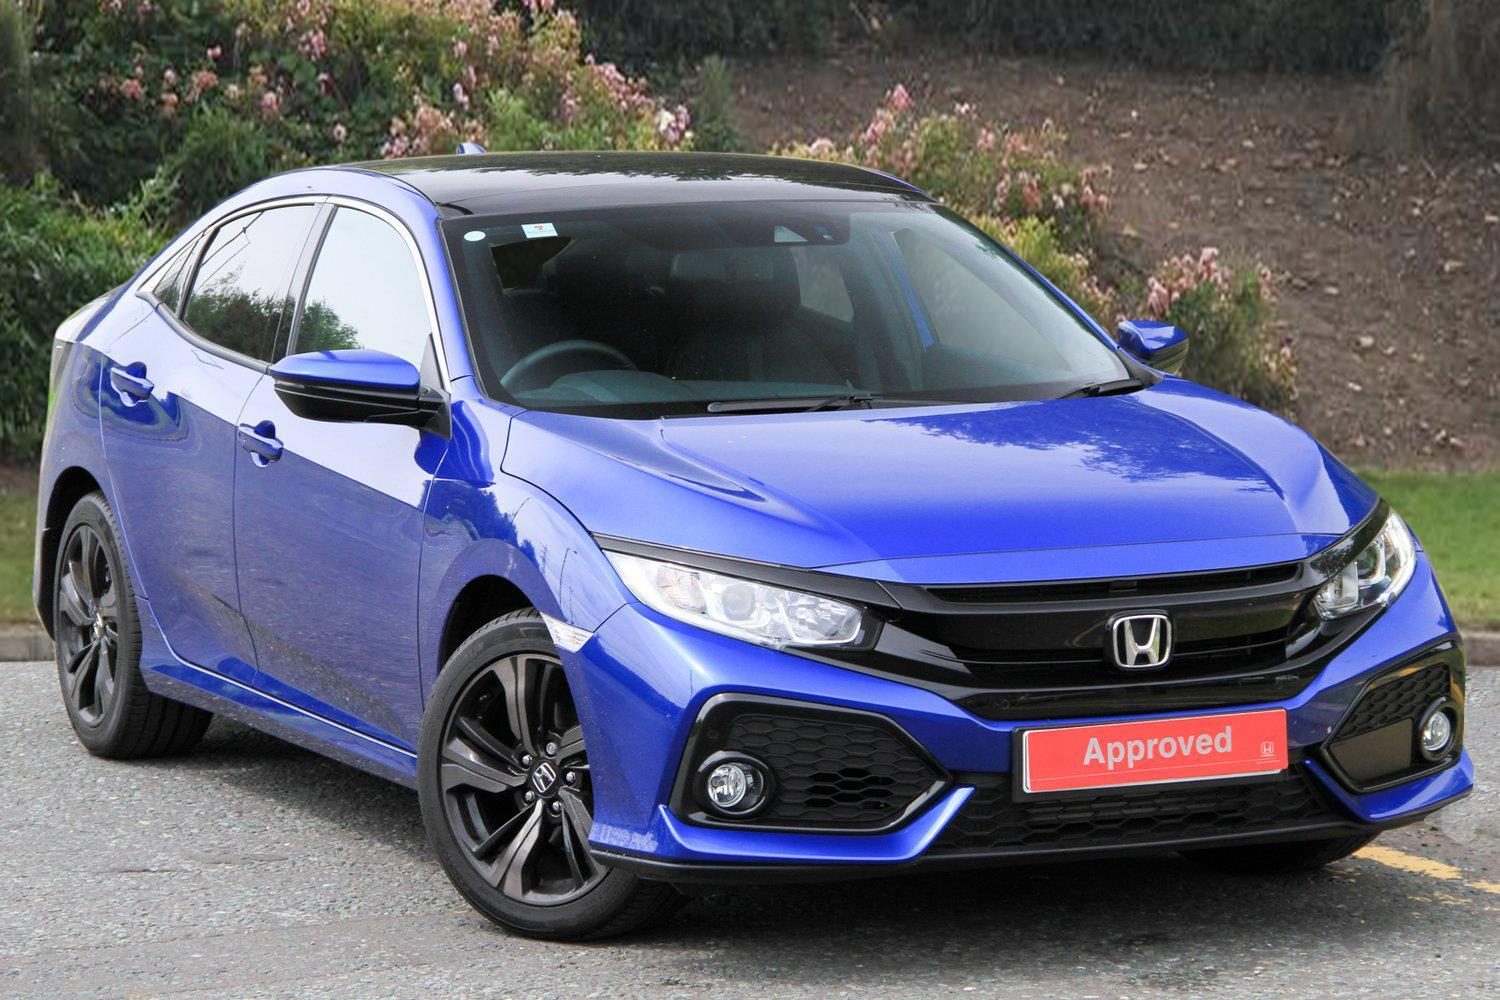 Honda Civic X-Recensioni e pareri possessori - Forum di ...